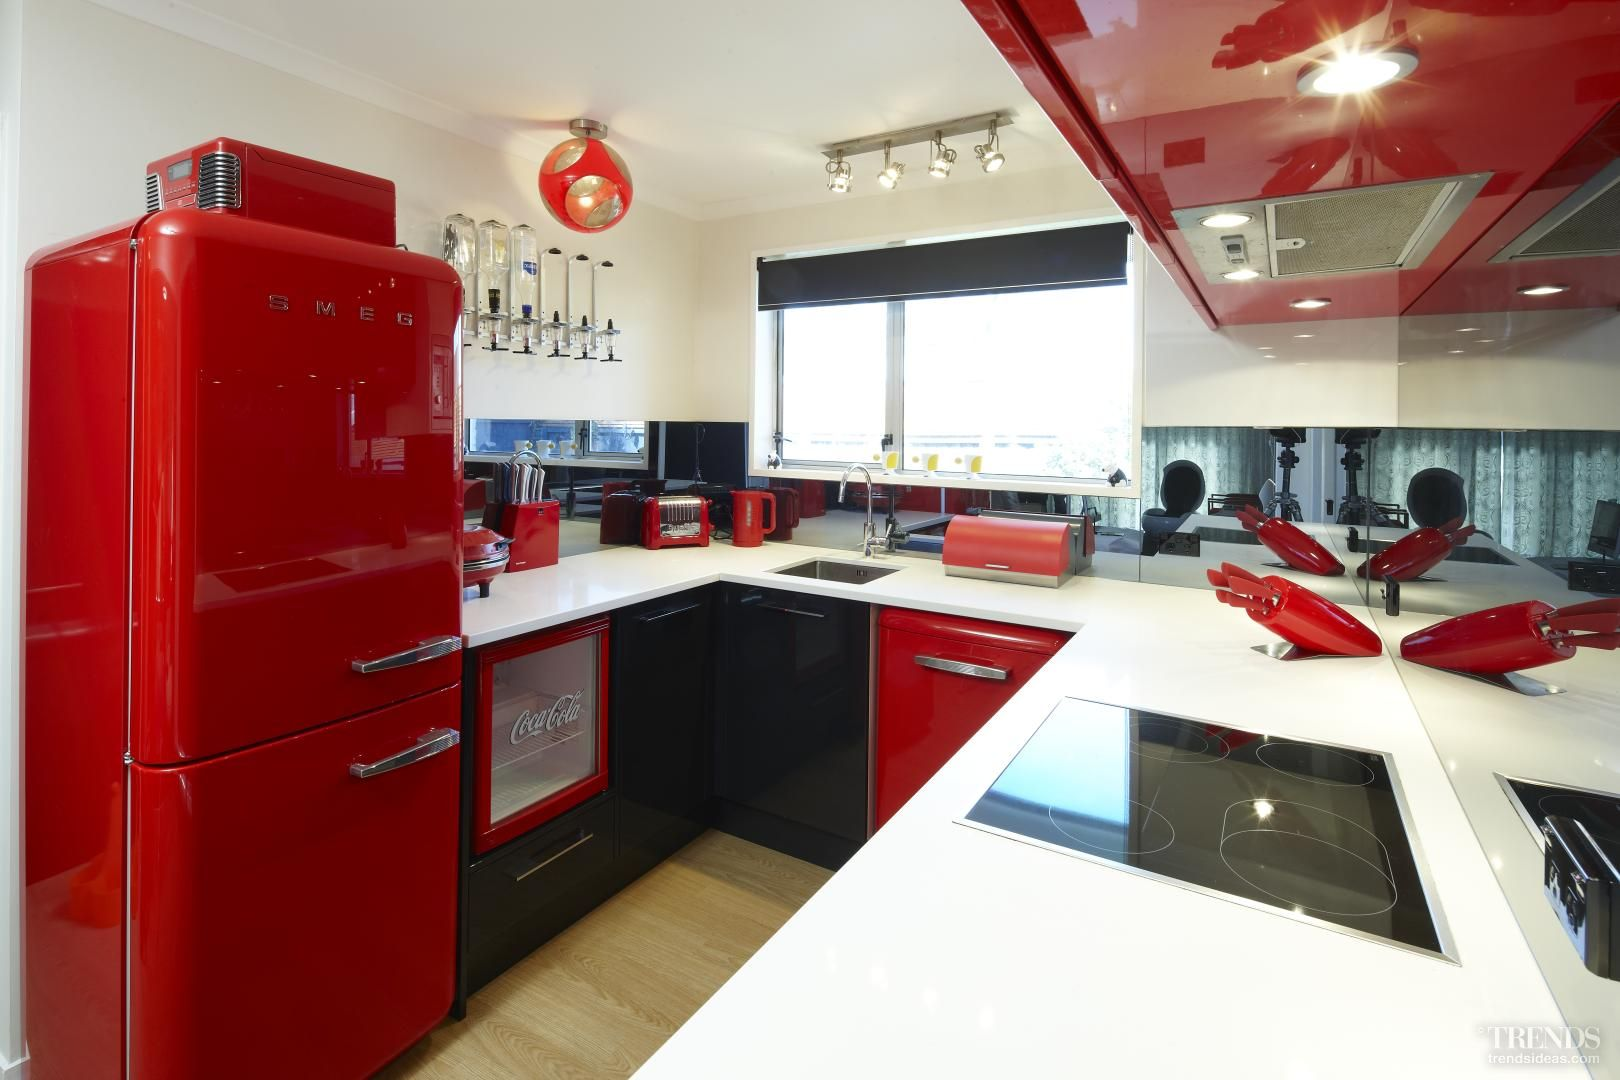 Retro chic bright red smeg kitchen